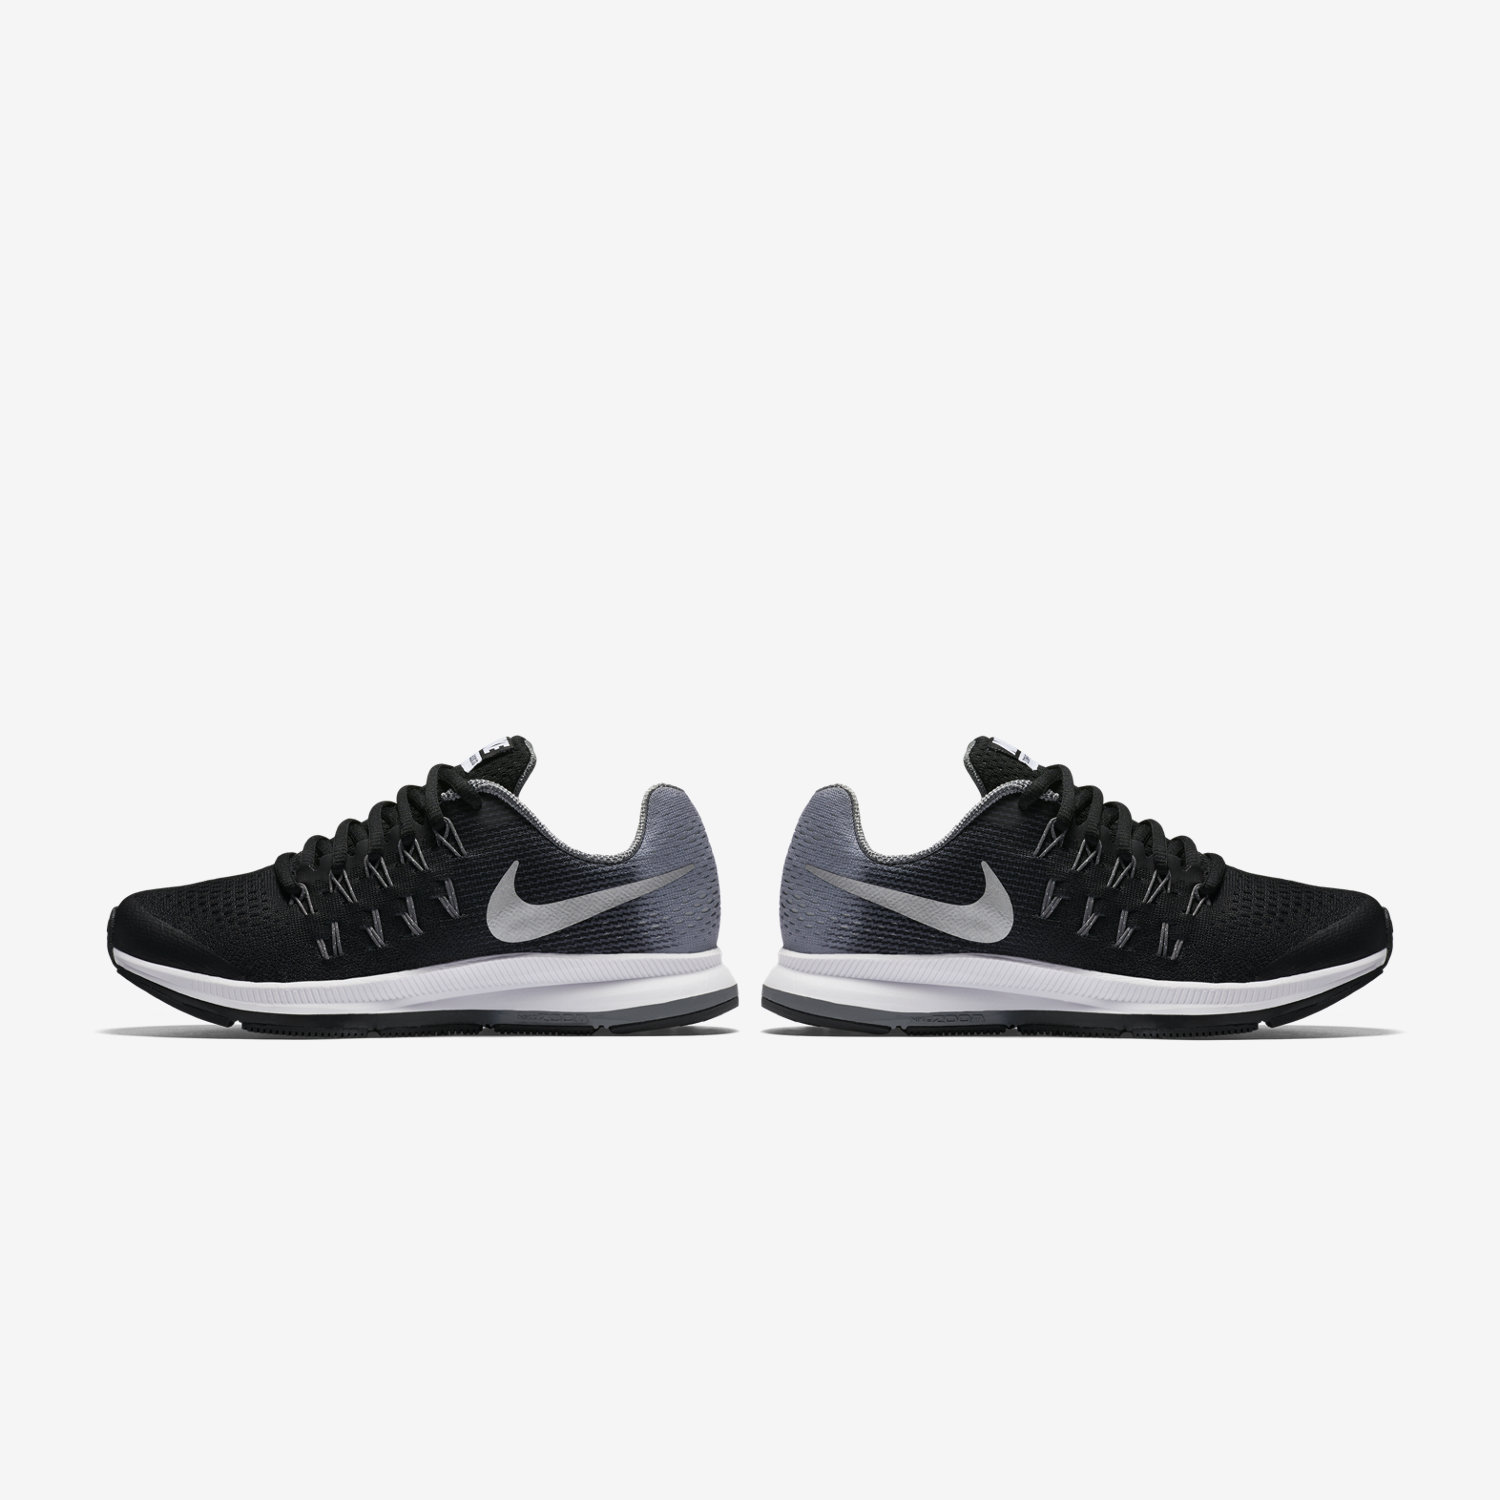 wholesale dealer 3fd3a c593f 3. nike 849564 001 zapatilla air zoom pegasus nike air zoom pegasus 33  shield zapatillas de running